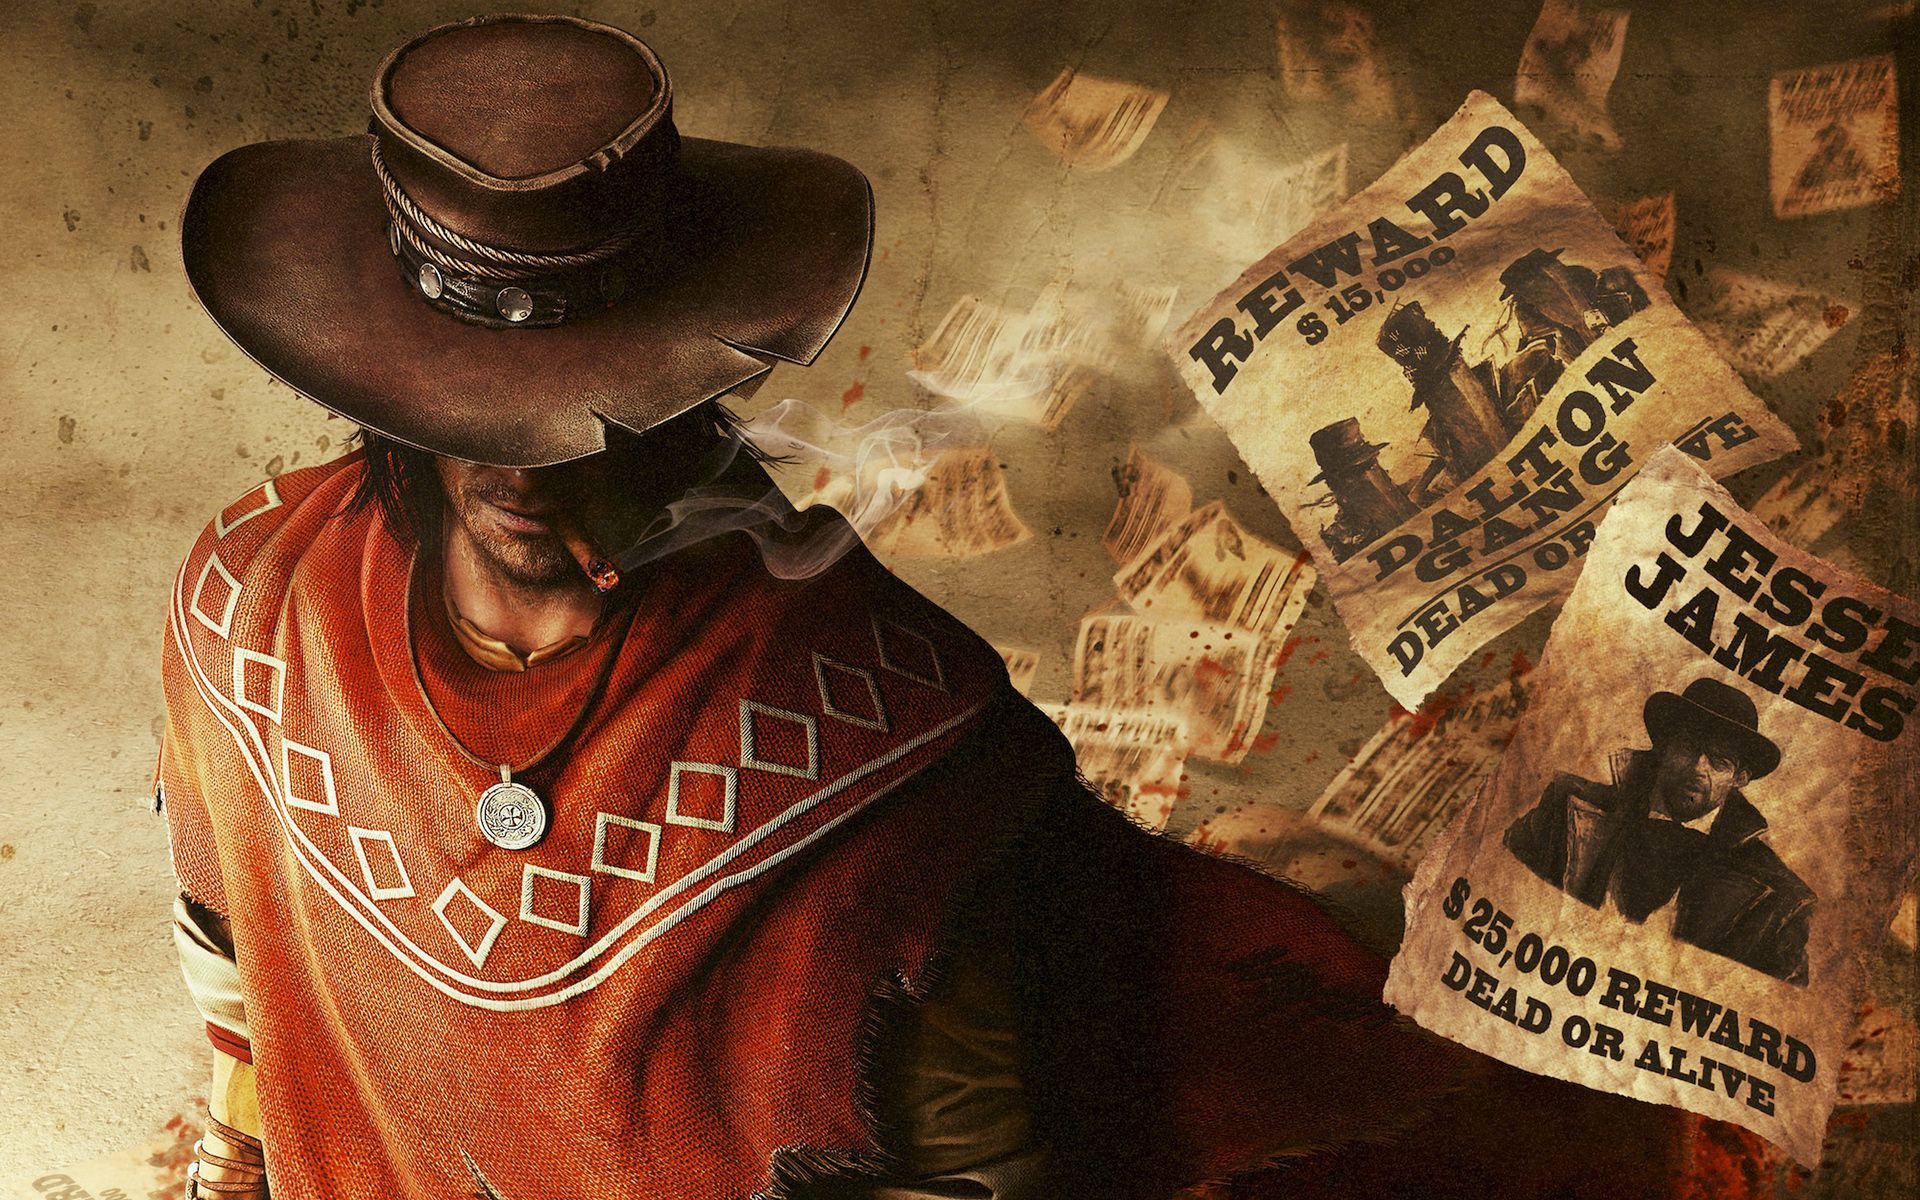 Gunslinger | Call of Juarez: Gunslinger due out May 22 | Gaming Console Network